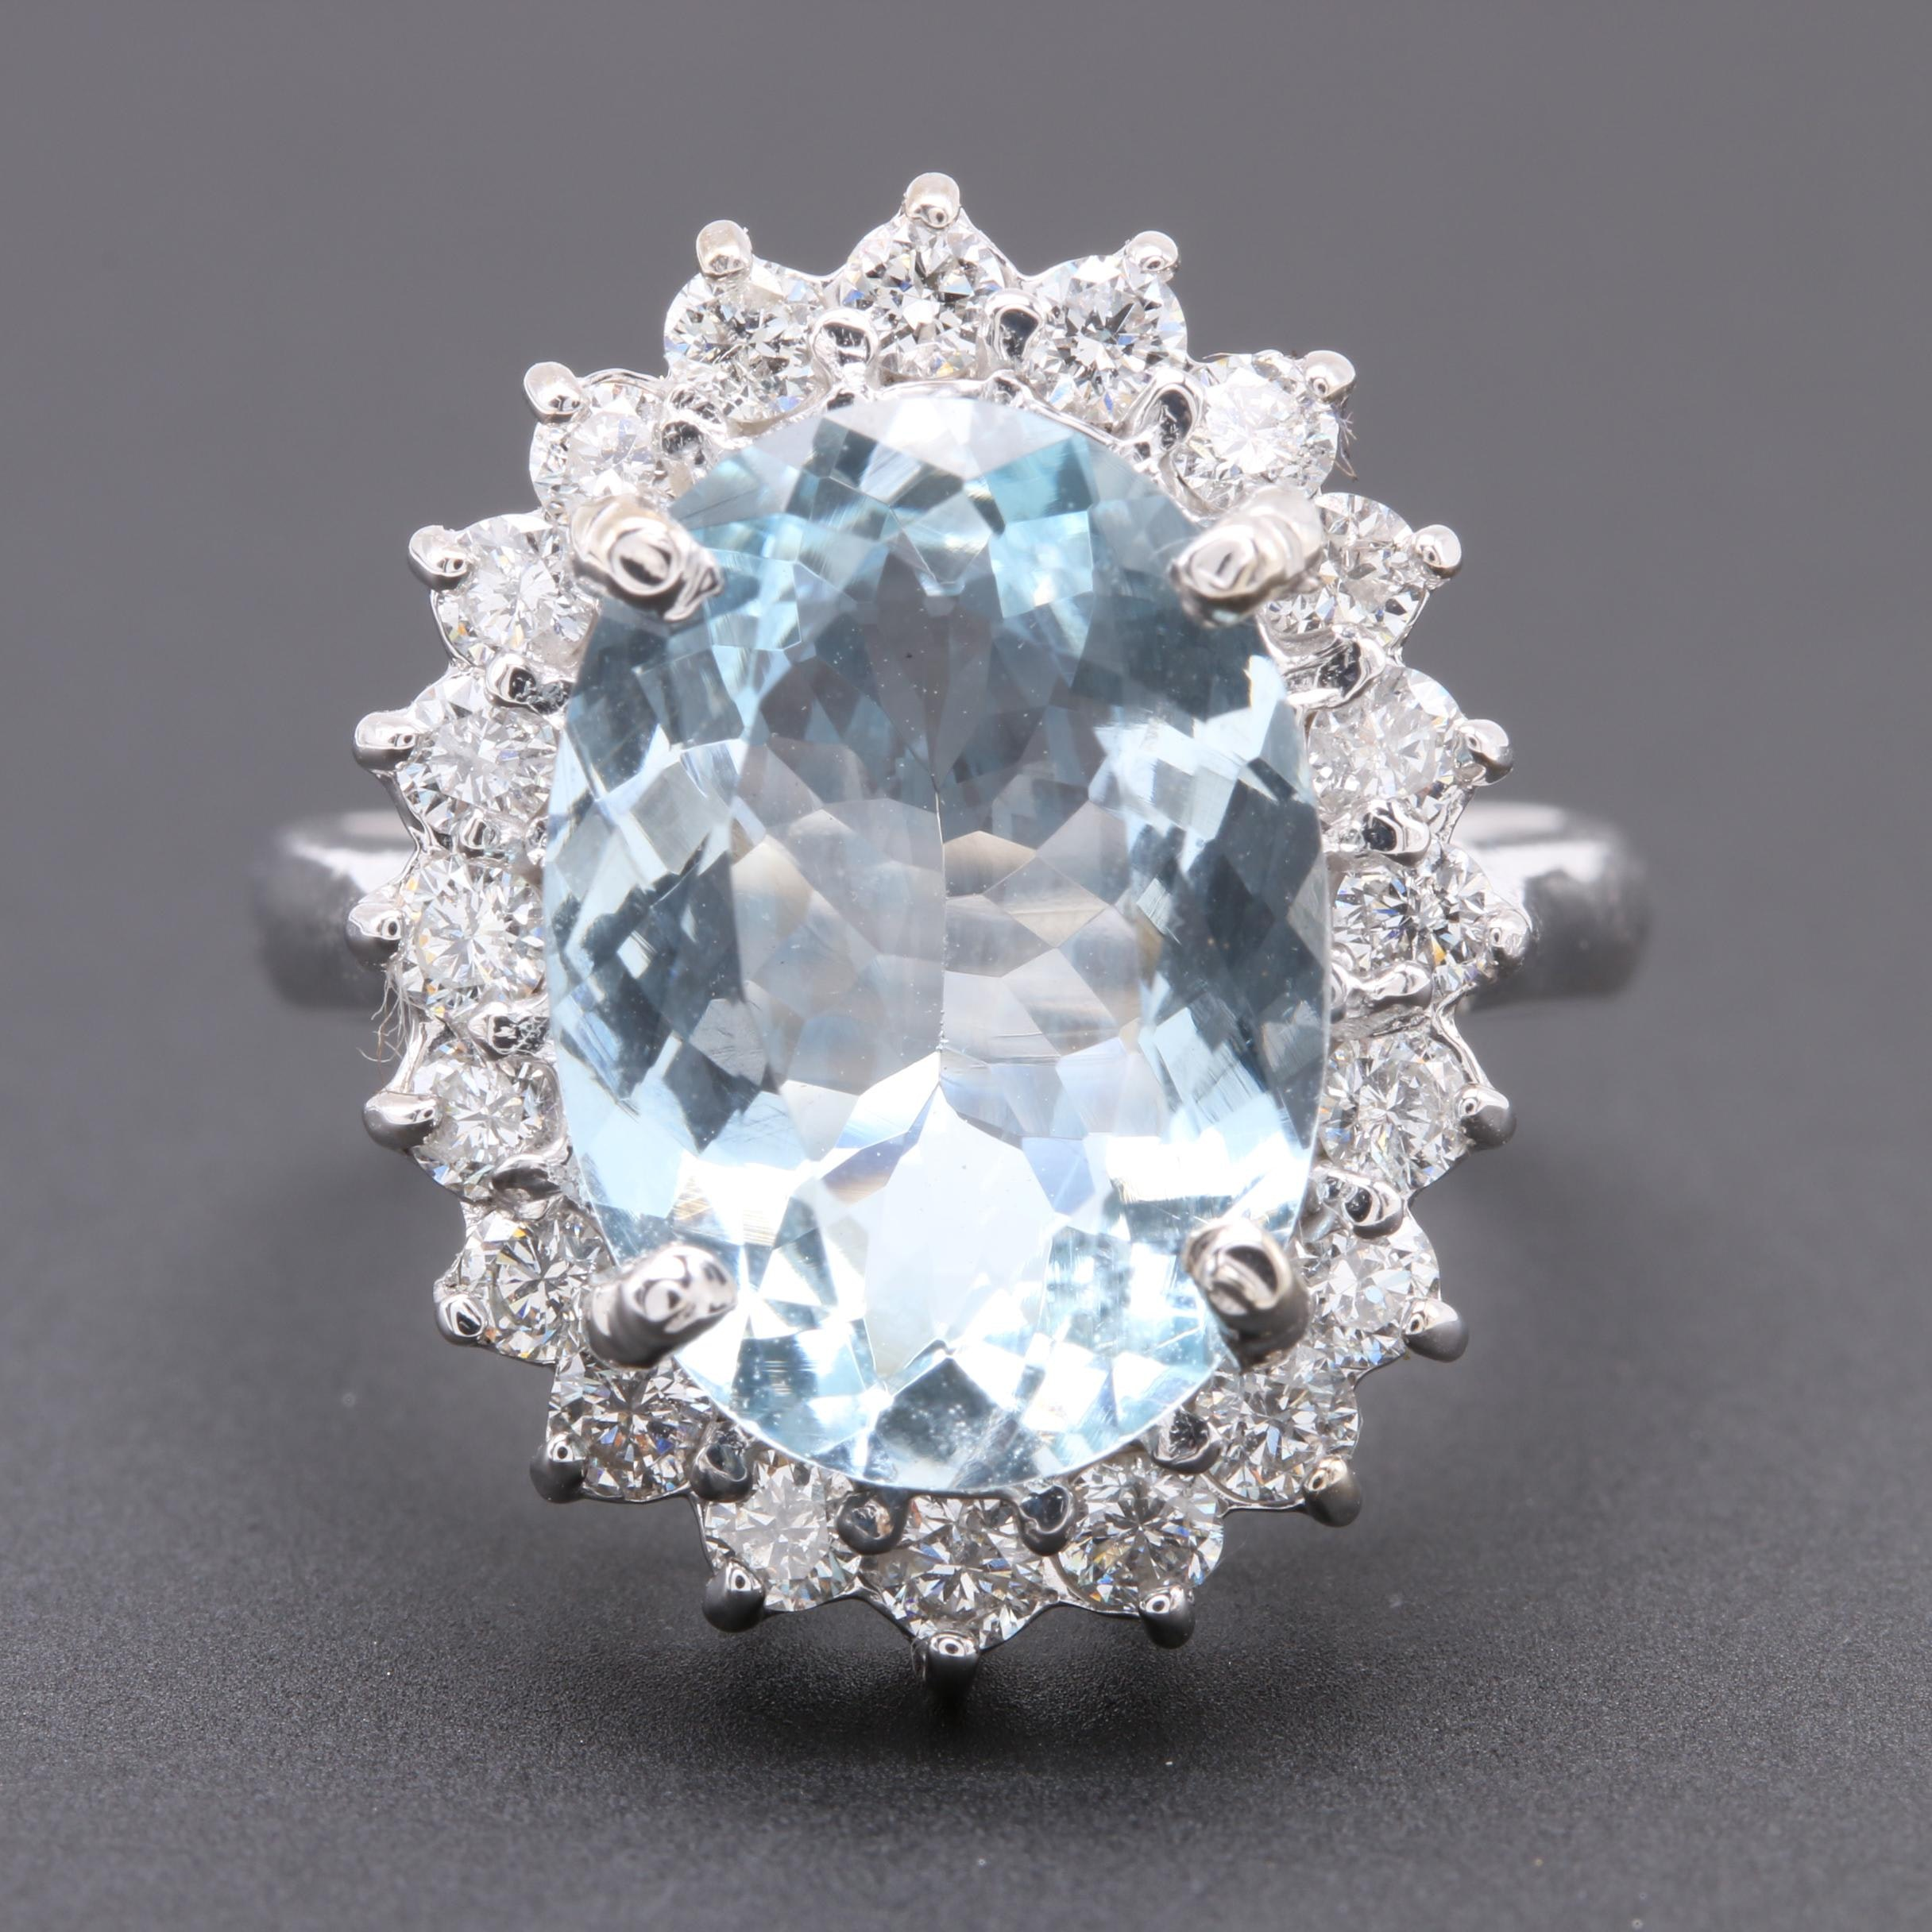 14K White Gold 4.08 CT Aquamarine and Diamond Ring